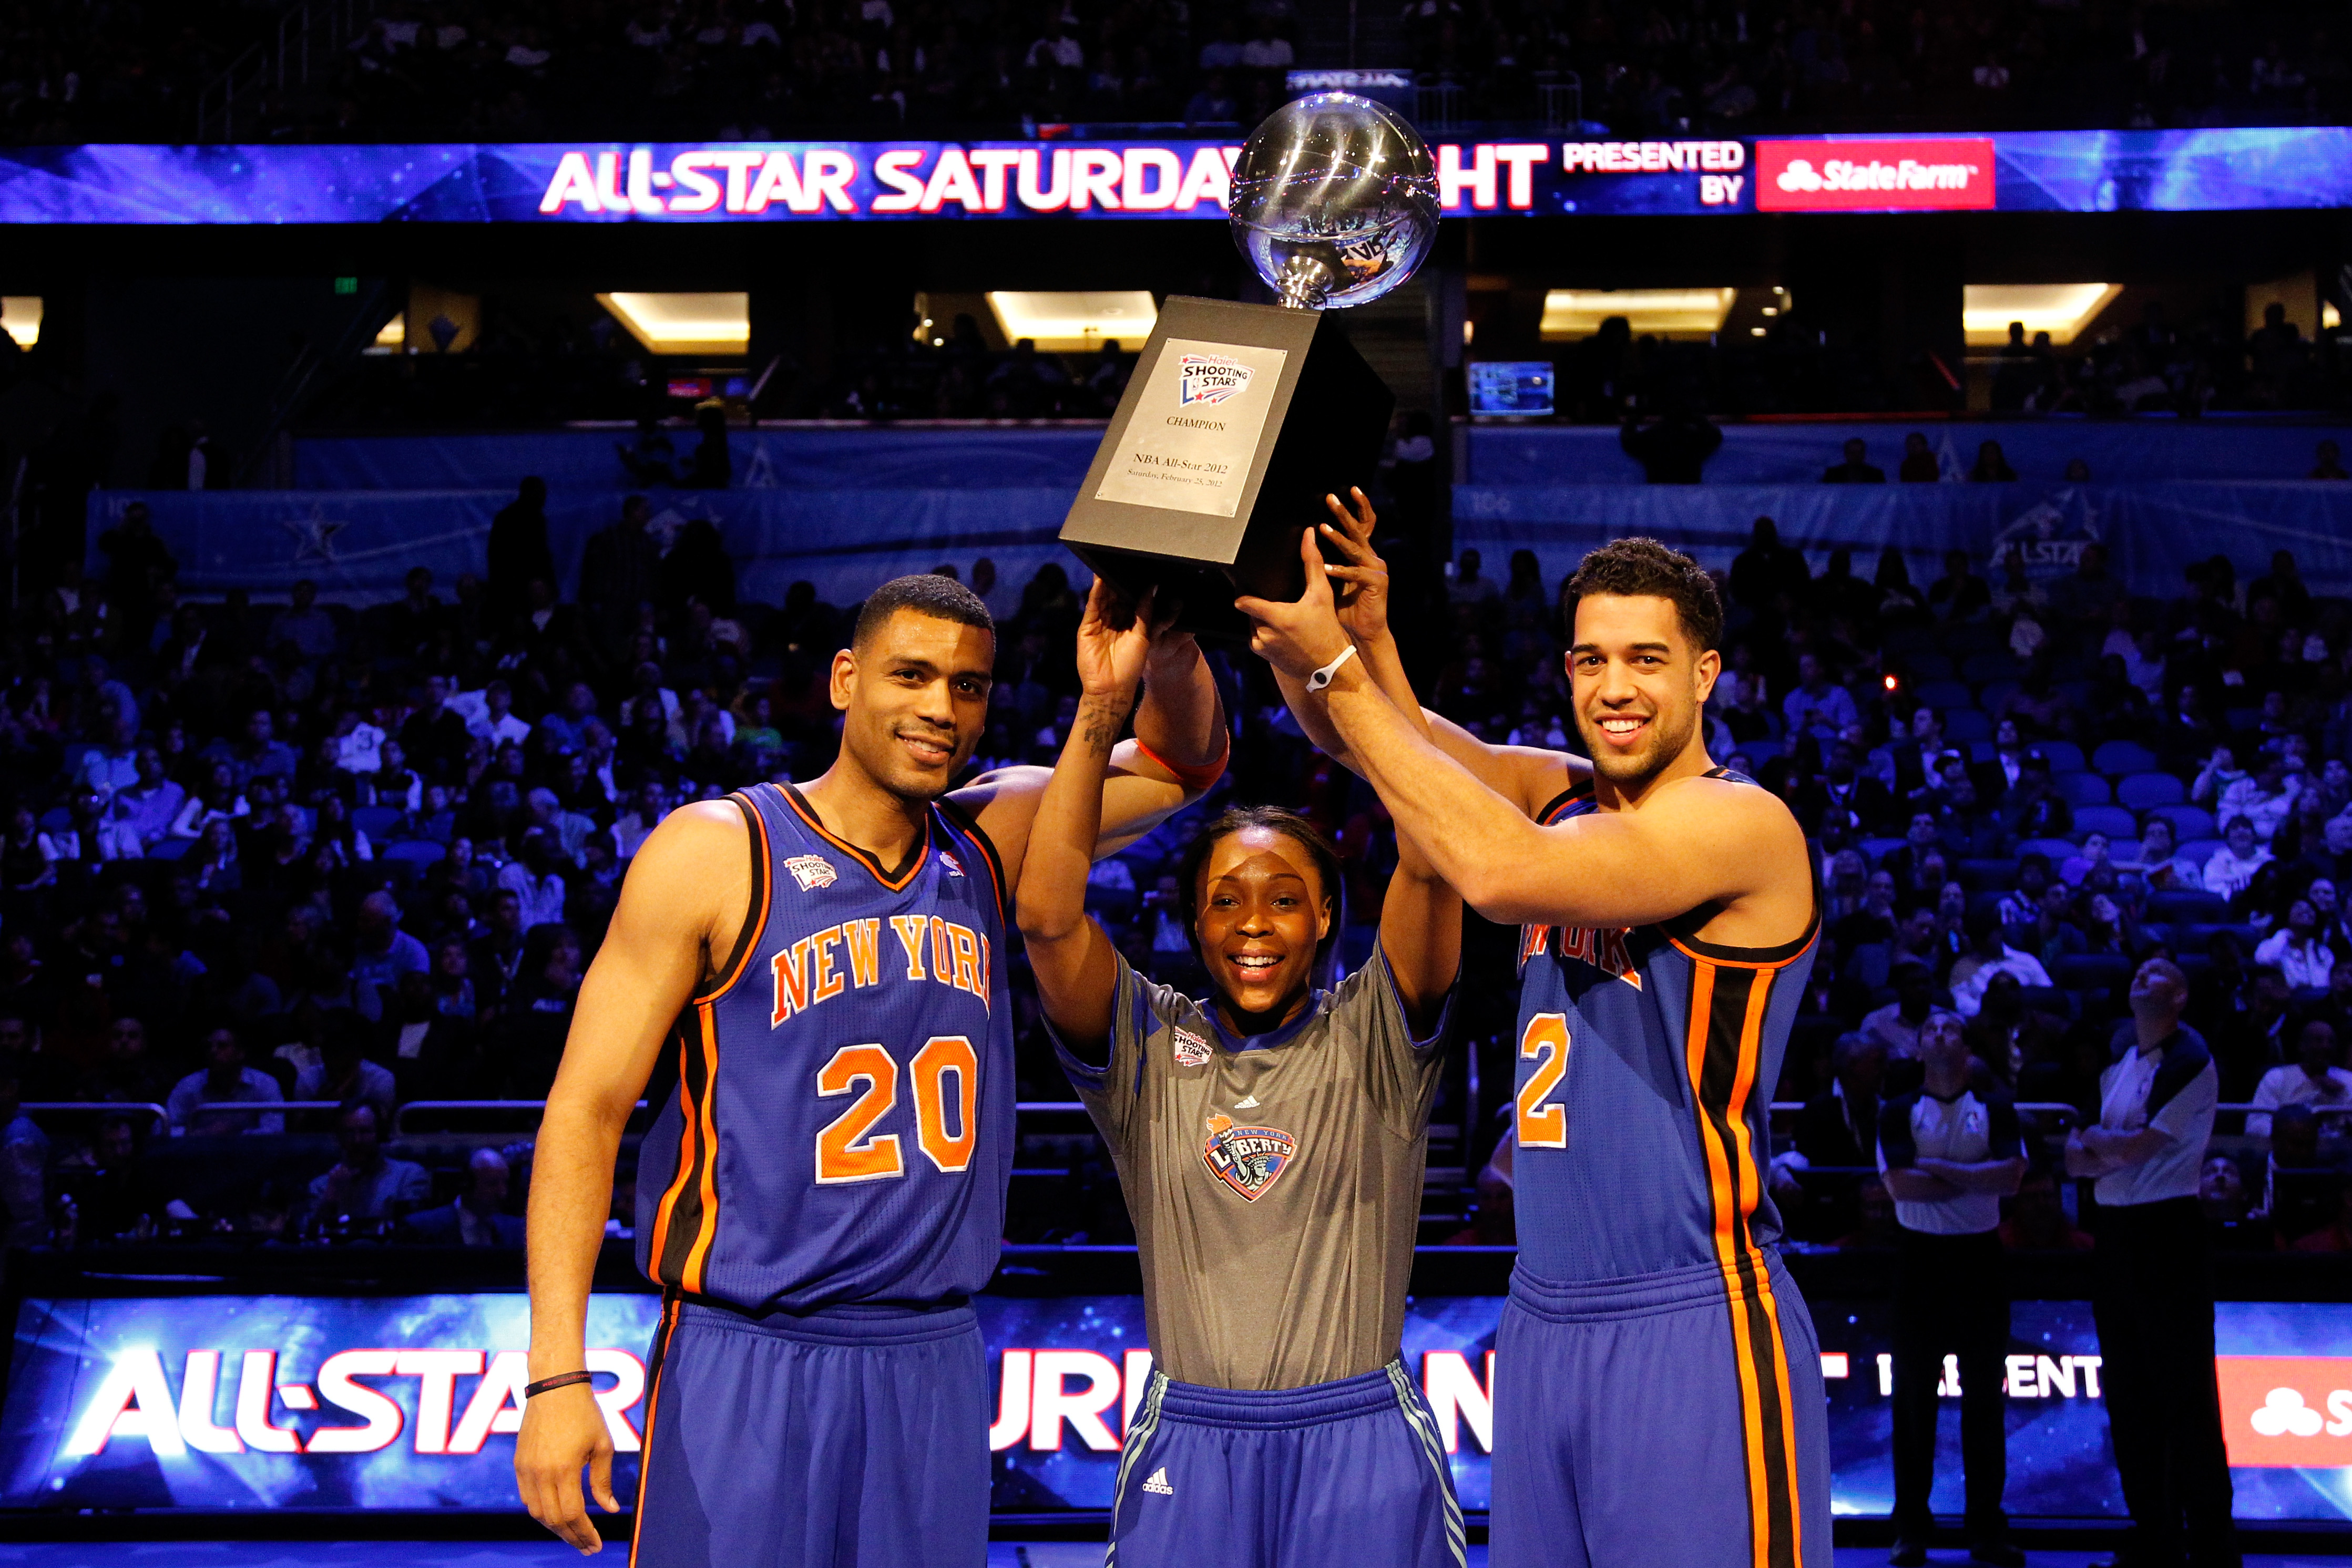 Knights in the Pros Special Event RU to retire Cappie Pondexter s